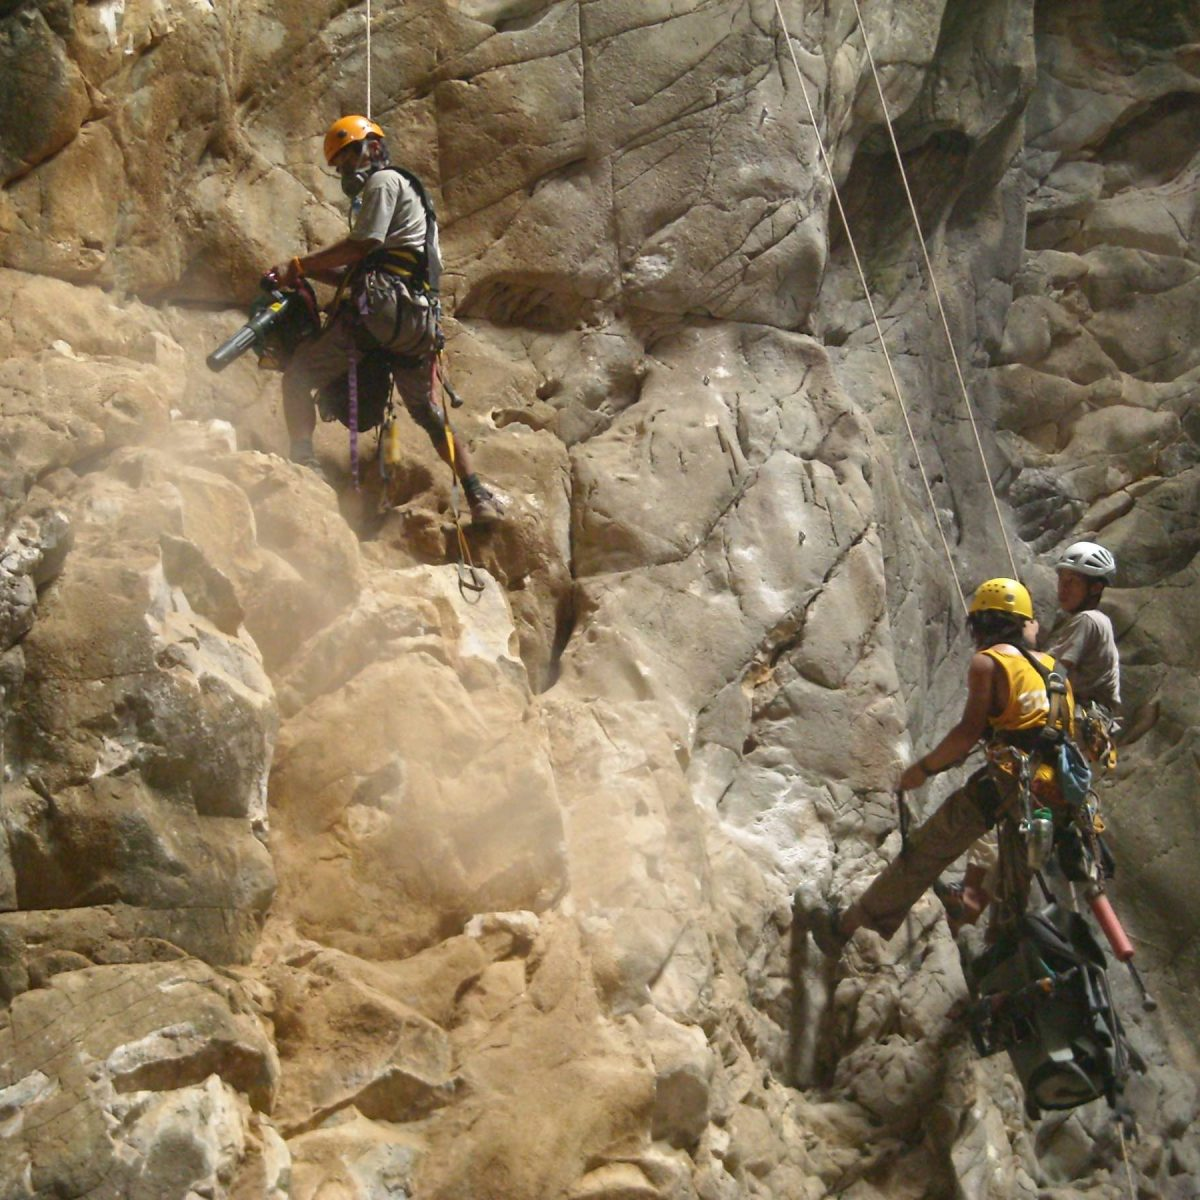 Bolting training with Add and Ooan in ASC Cave - 2010